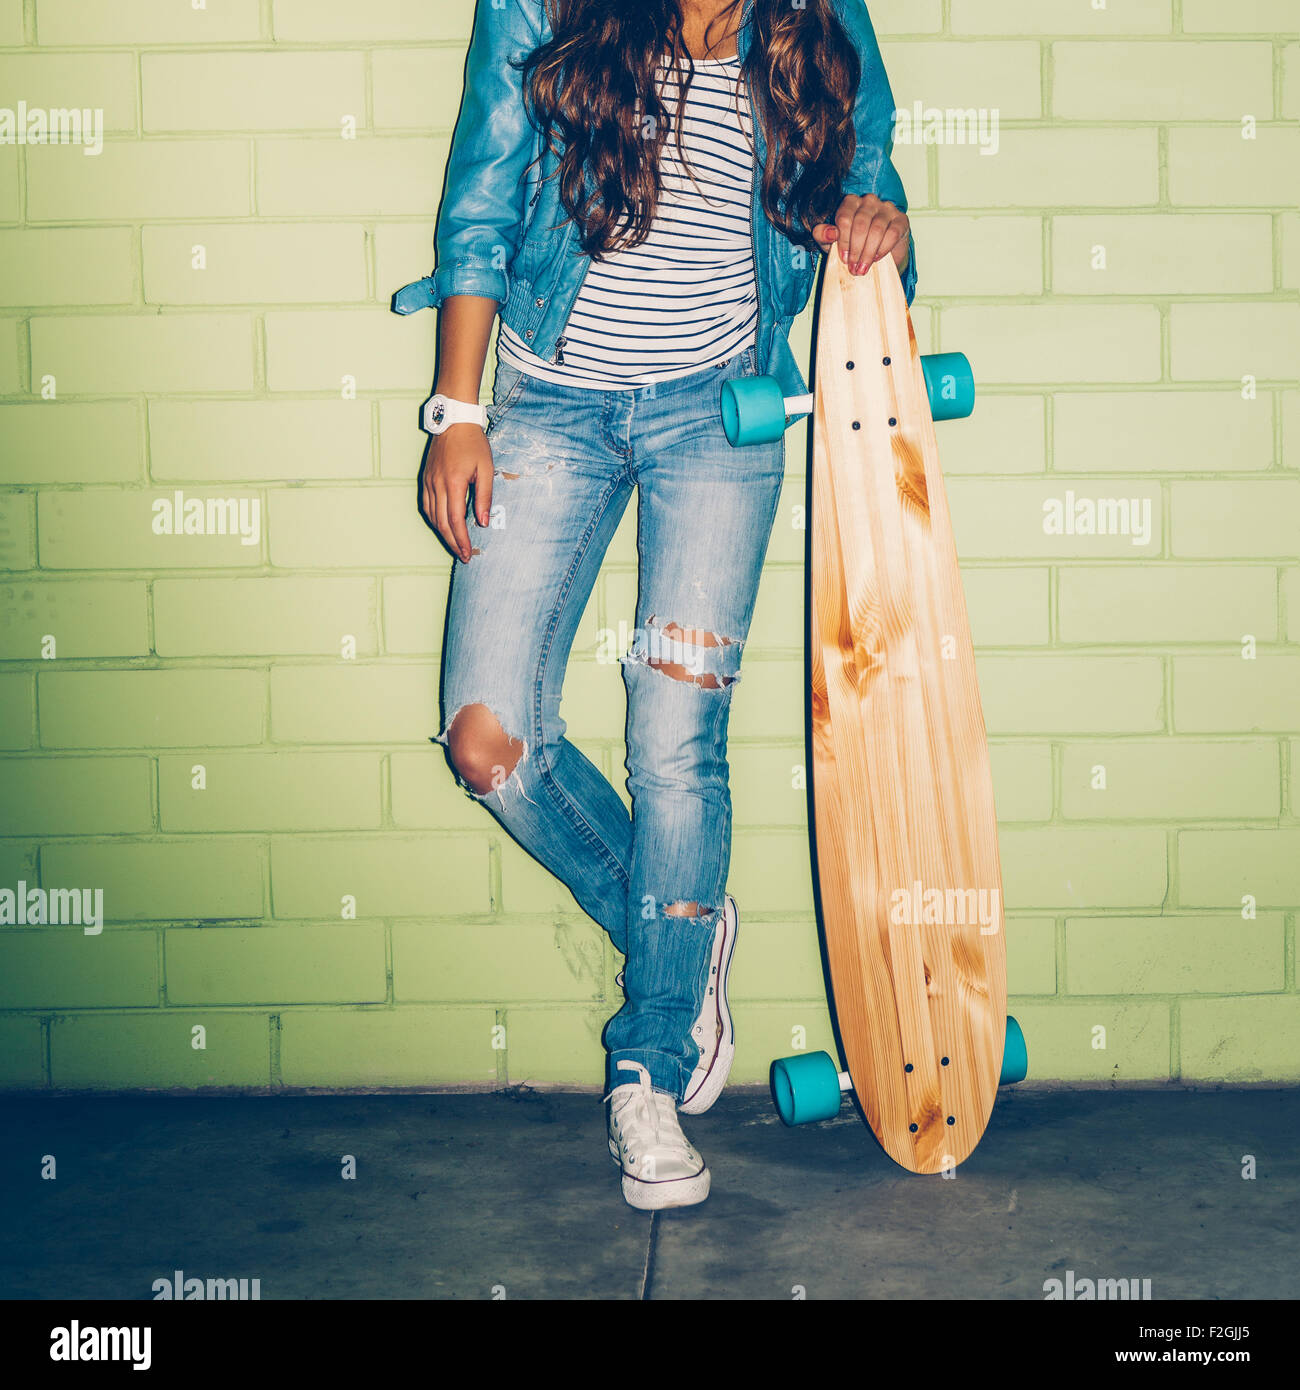 beautiful long-haired girl with wooden longboard skateboard stand near the green brick wall Stock Foto